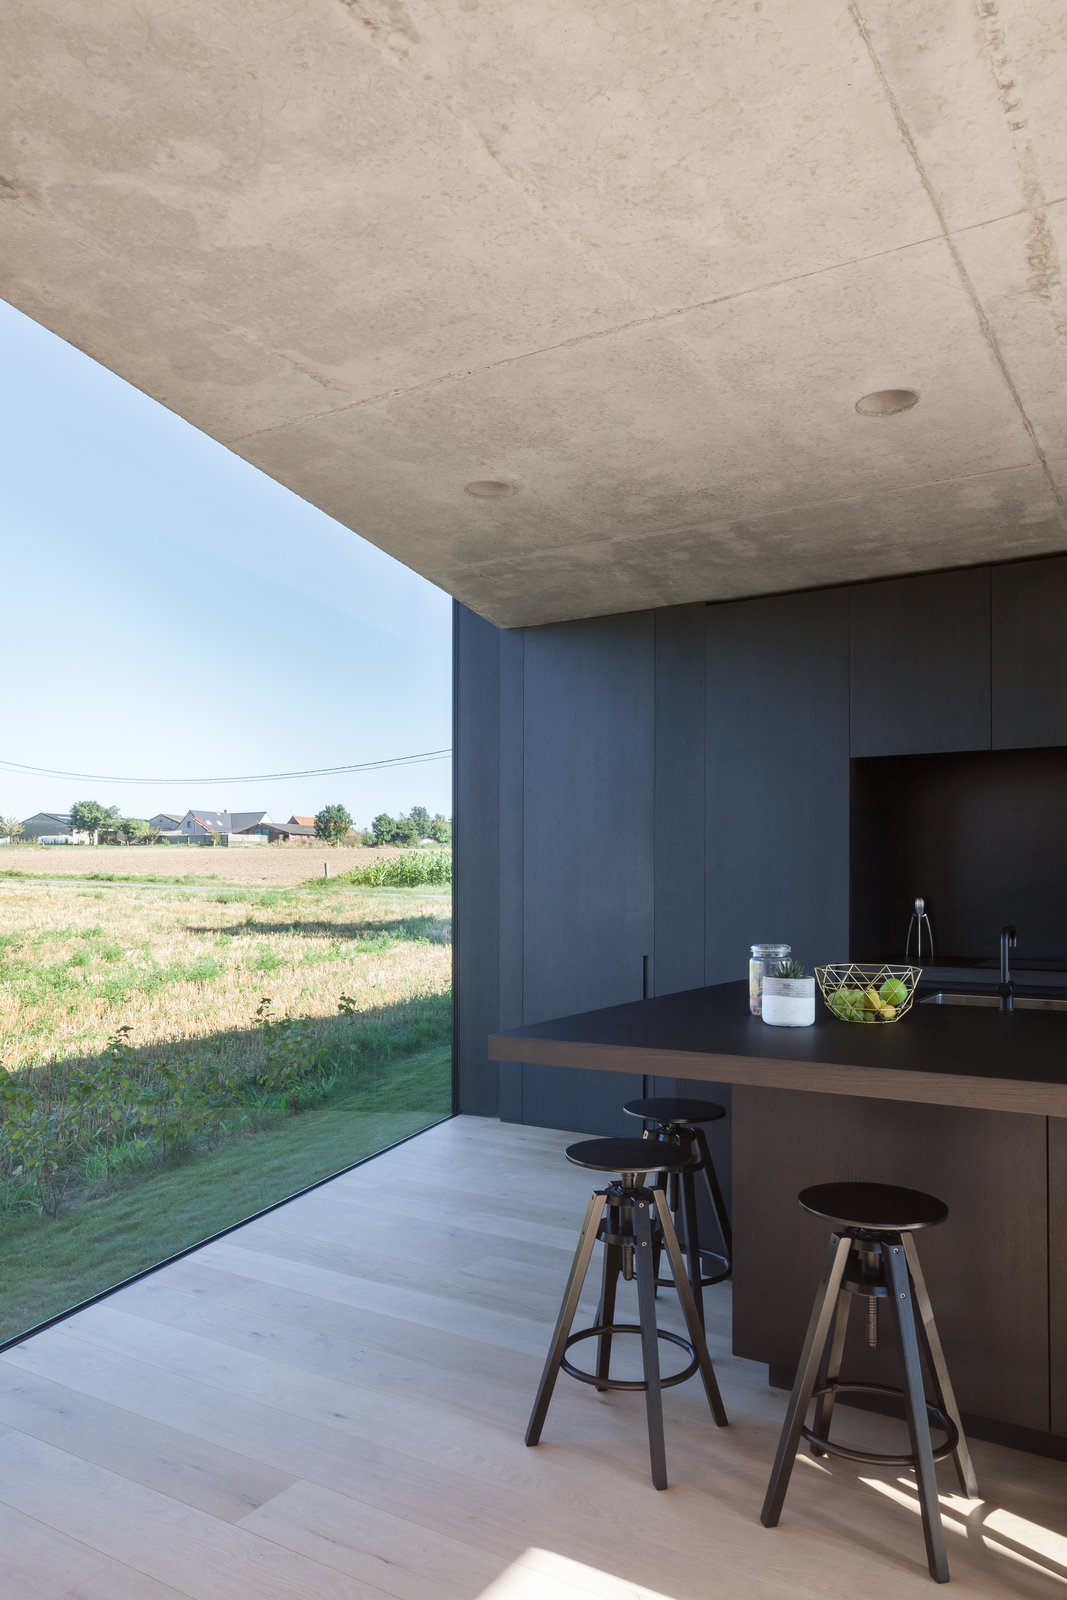 Photo 7 of 14 in Defying traditionalism: concrete bungalow inserted in a rural Belgian landscape